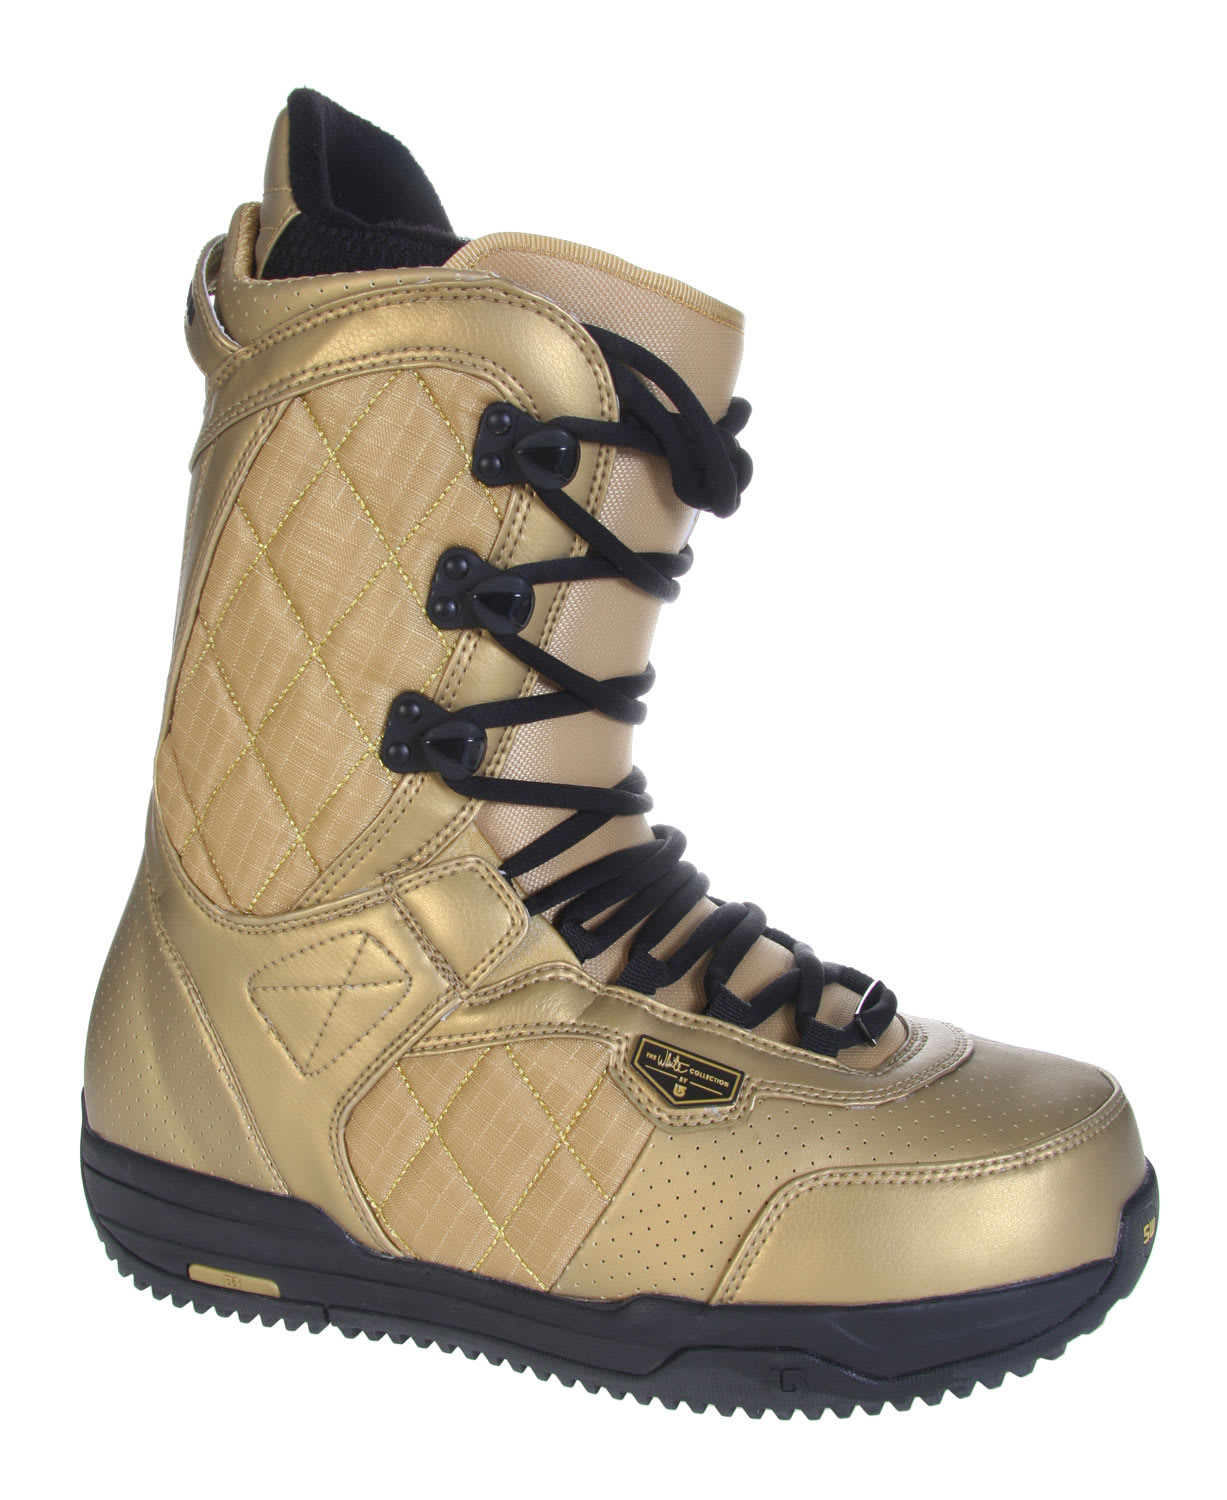 Discount Cheap Burton Snowboard Boots | Save up to 70%